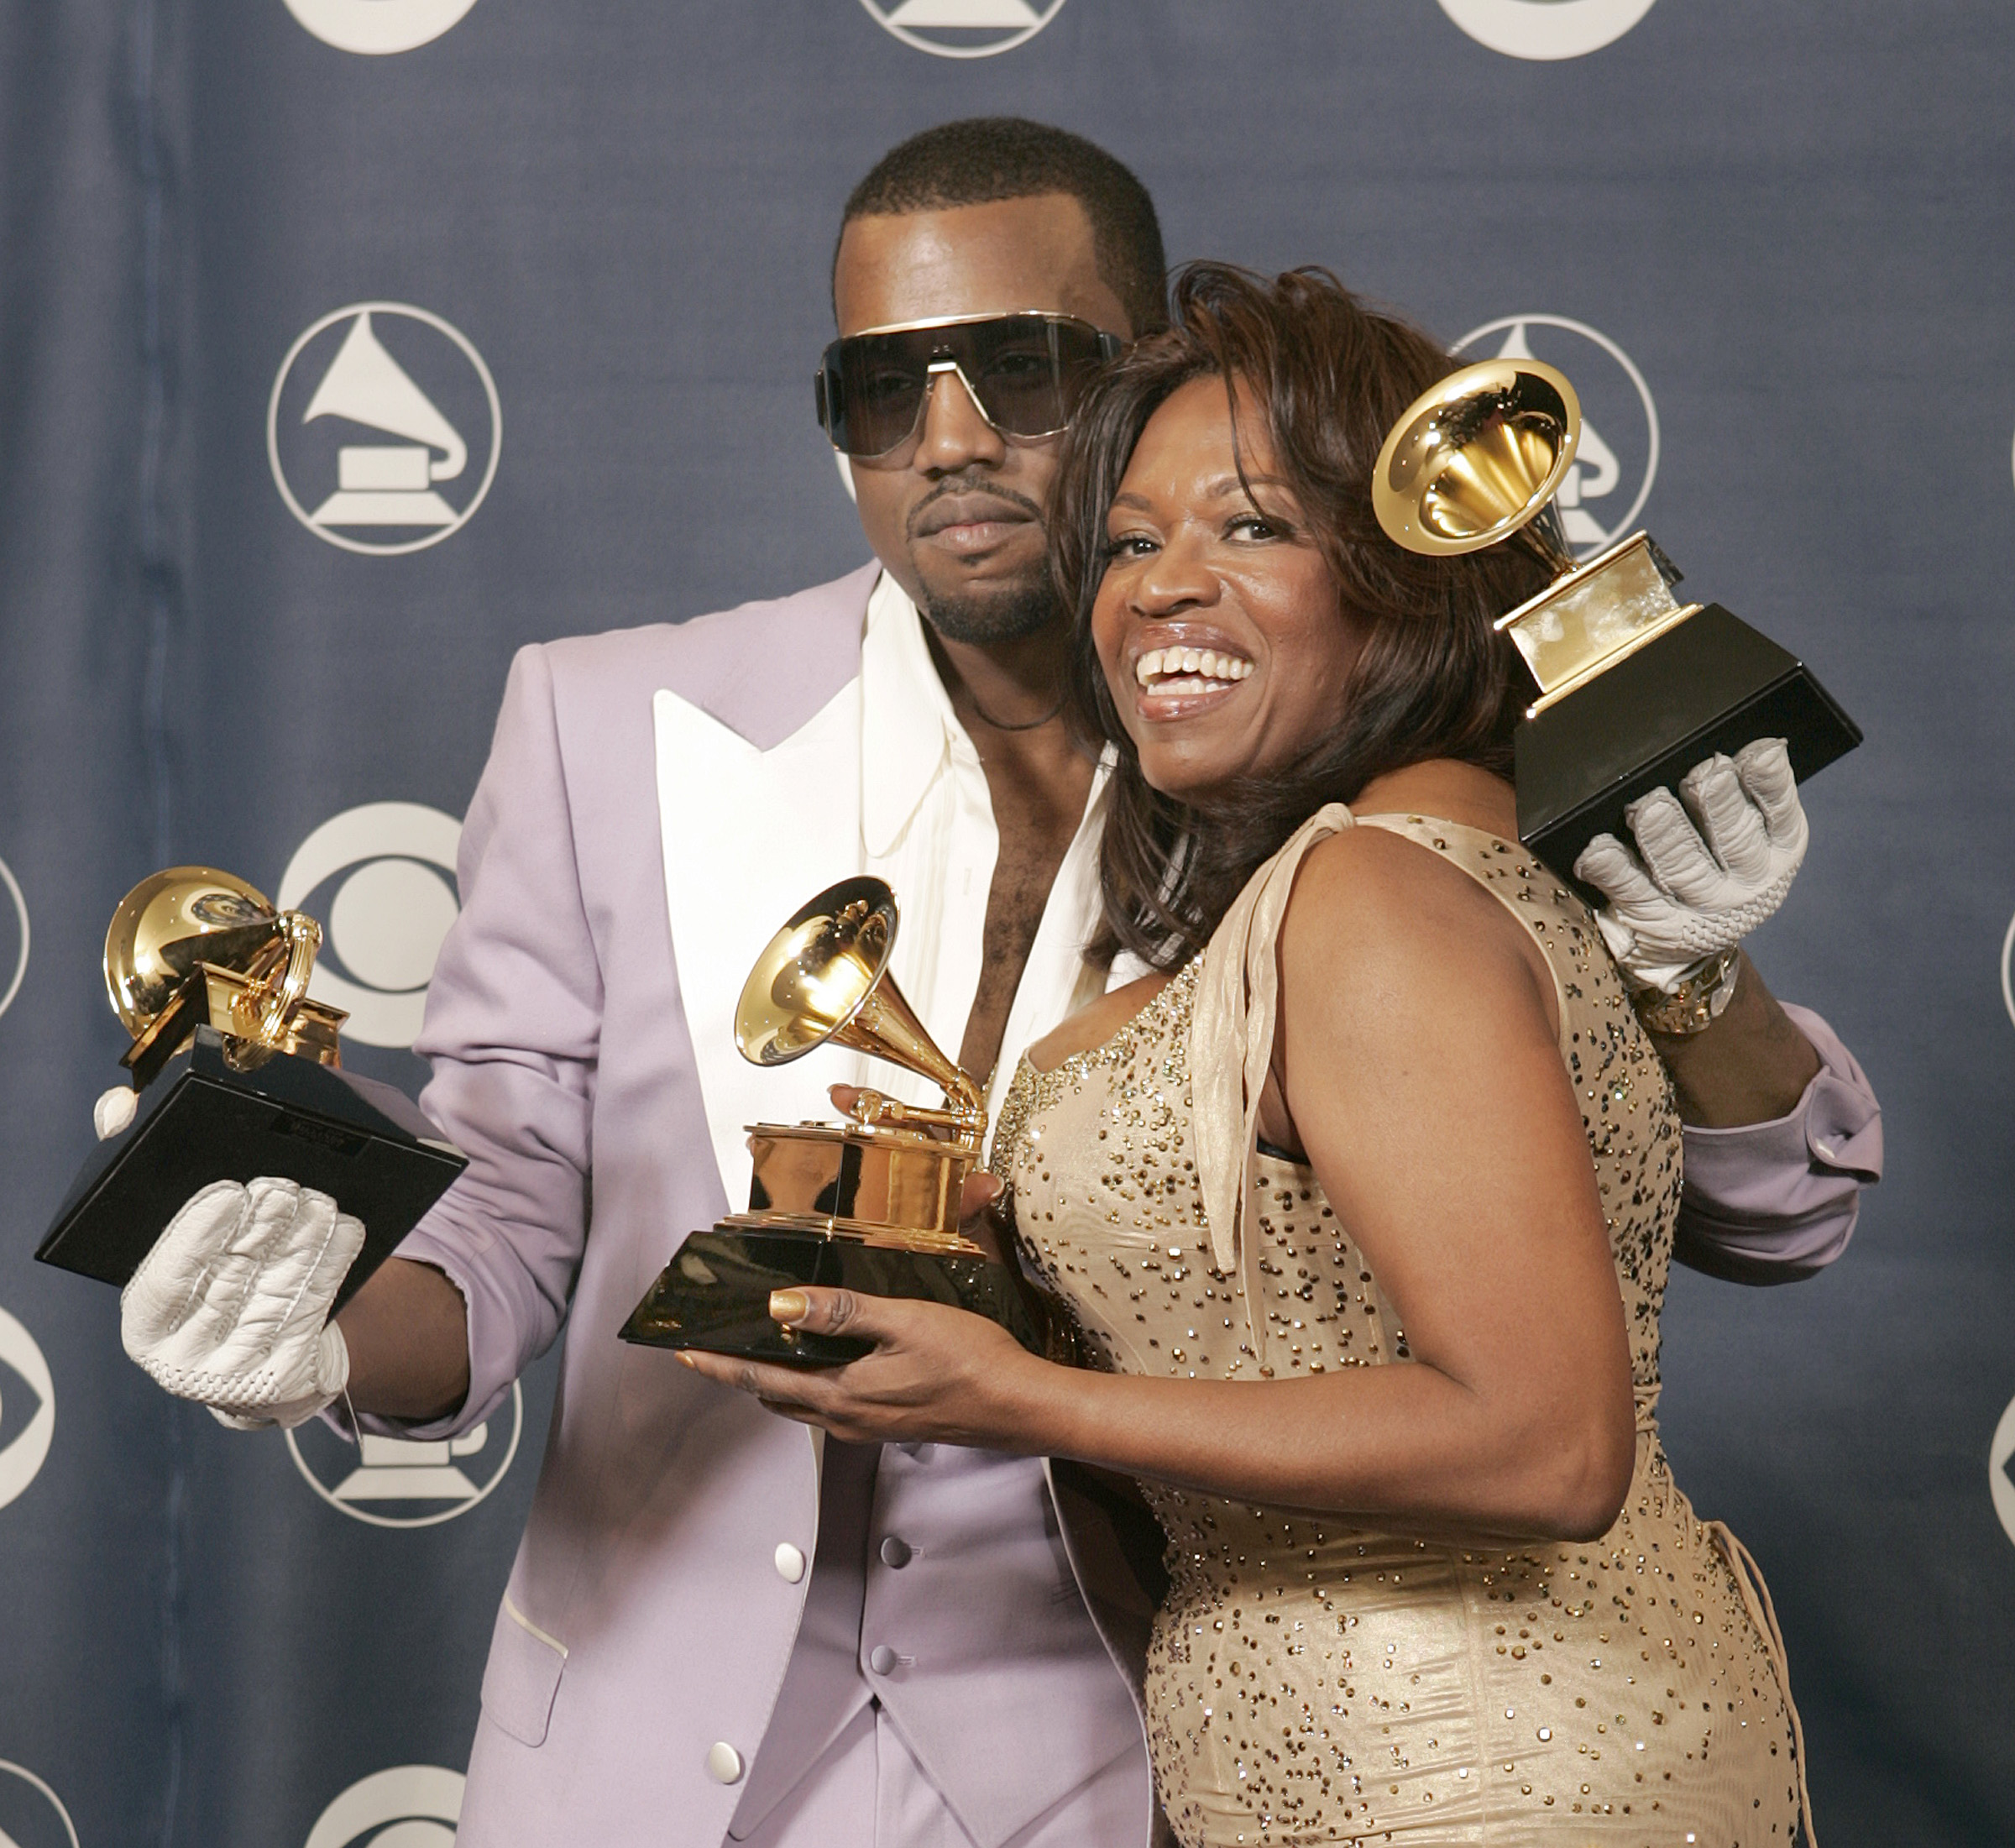 Kayne West with his mother, Donda West, won three Grammys at the 48th Annual Grammy Awards at the S